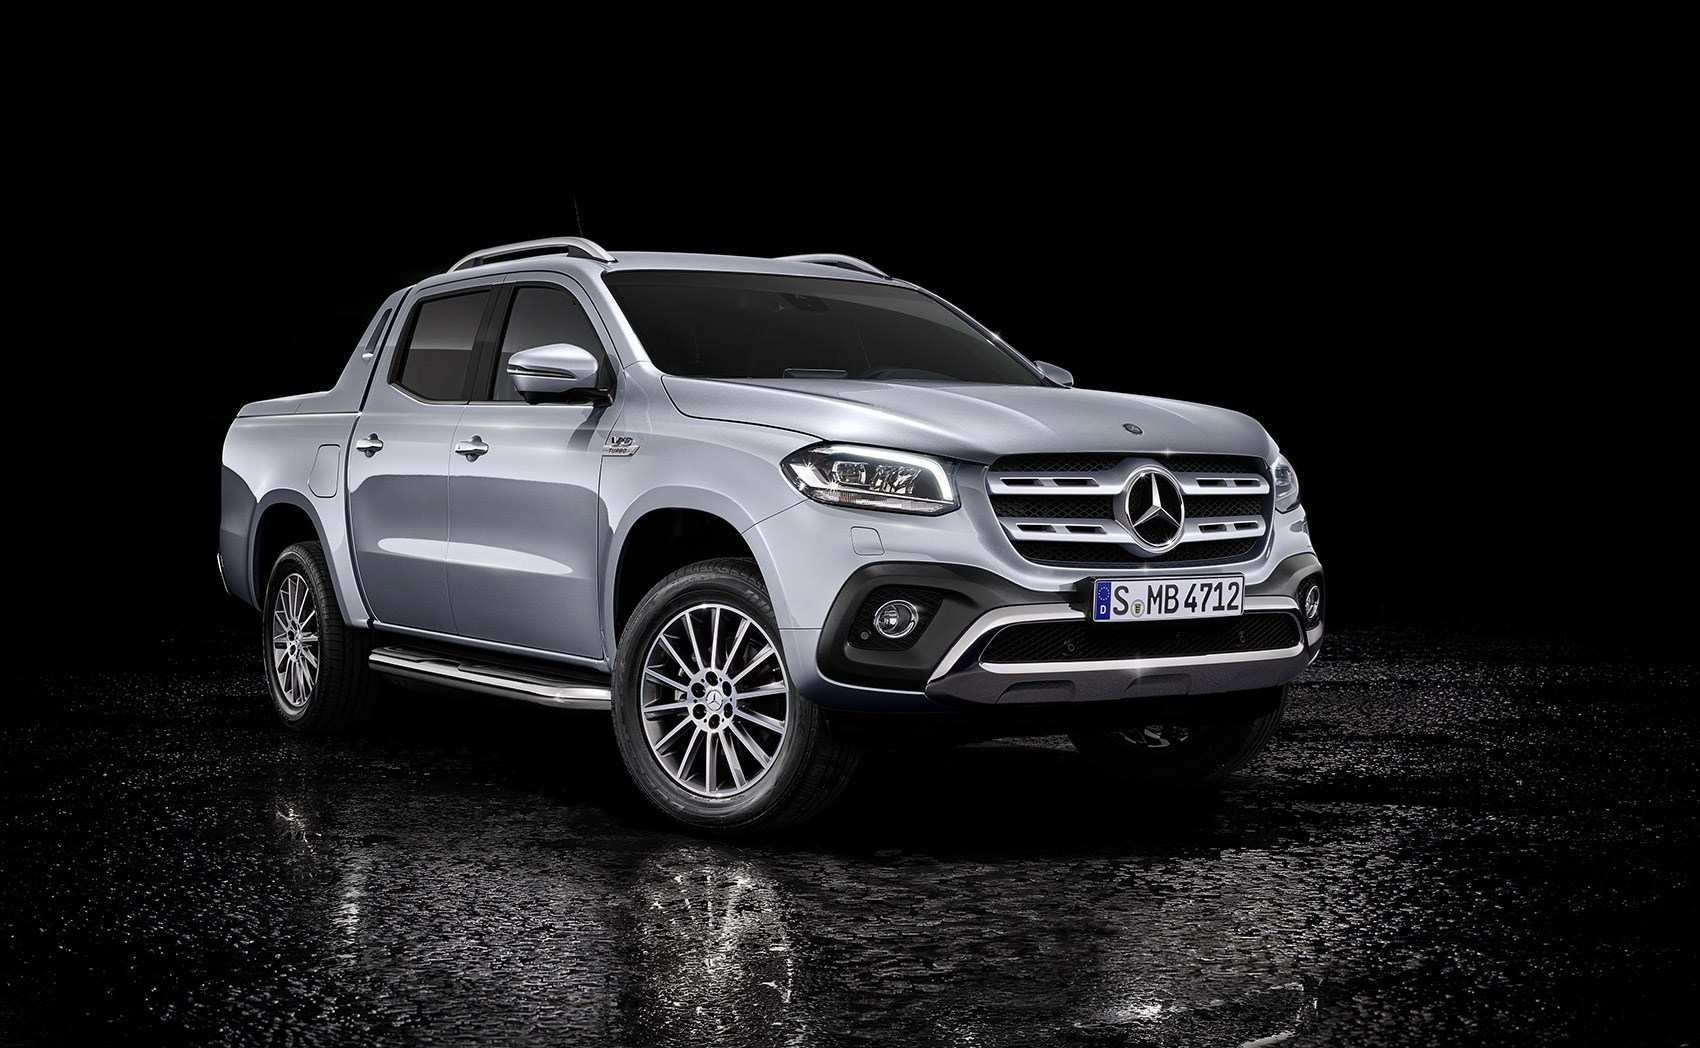 55 Great New 2019 Mercedes X Class Release Date And Specs Images with New 2019 Mercedes X Class Release Date And Specs